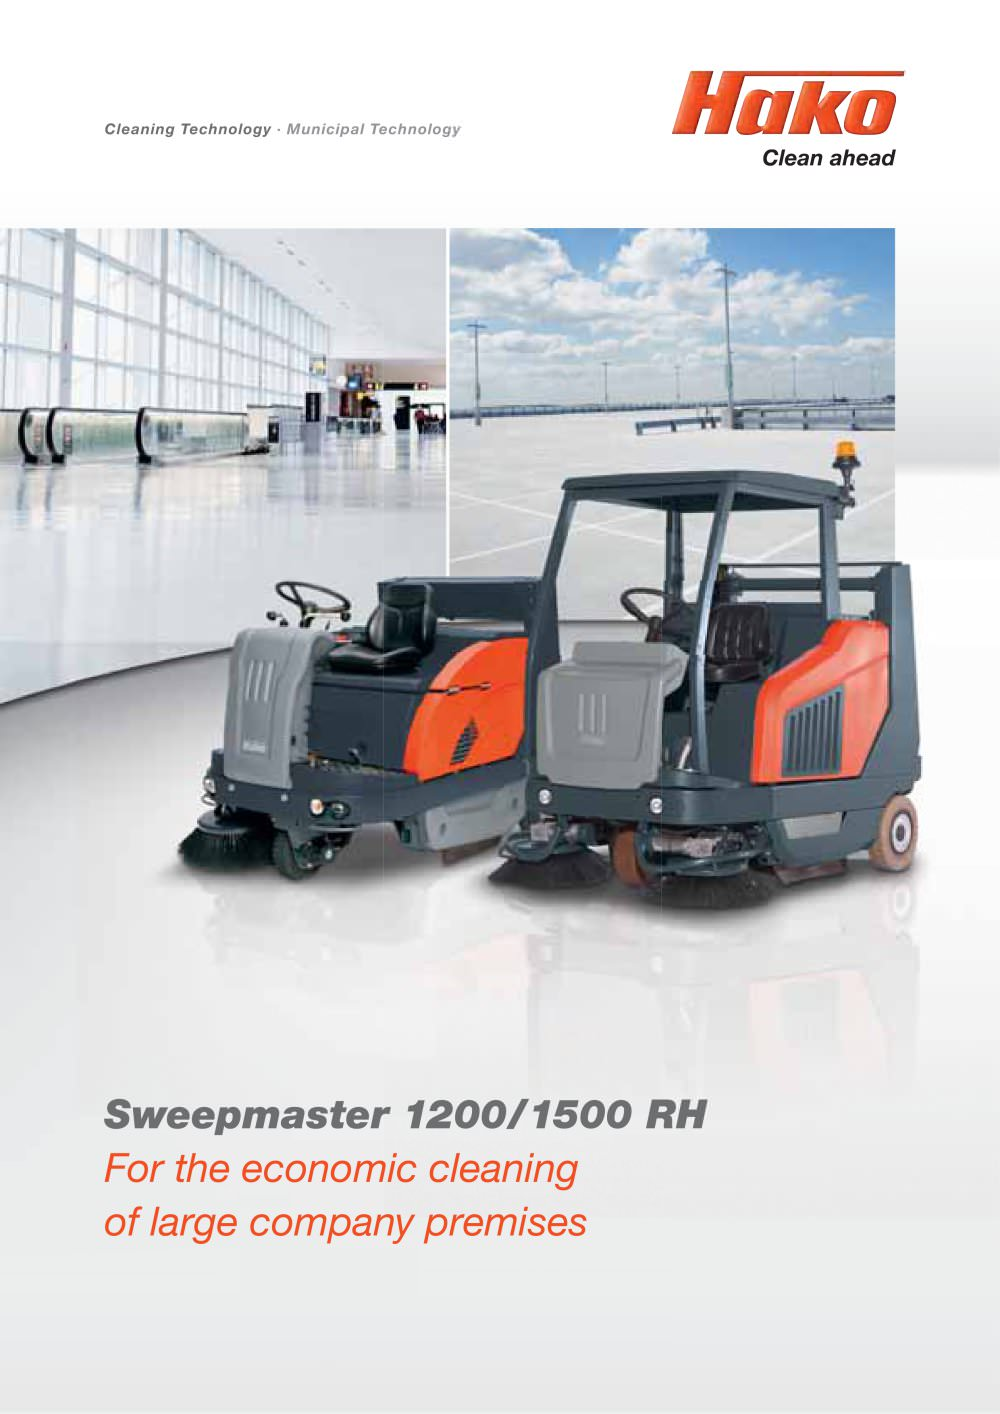 Sweepmaster 1200/1500 RH - 1 / 8 Pages